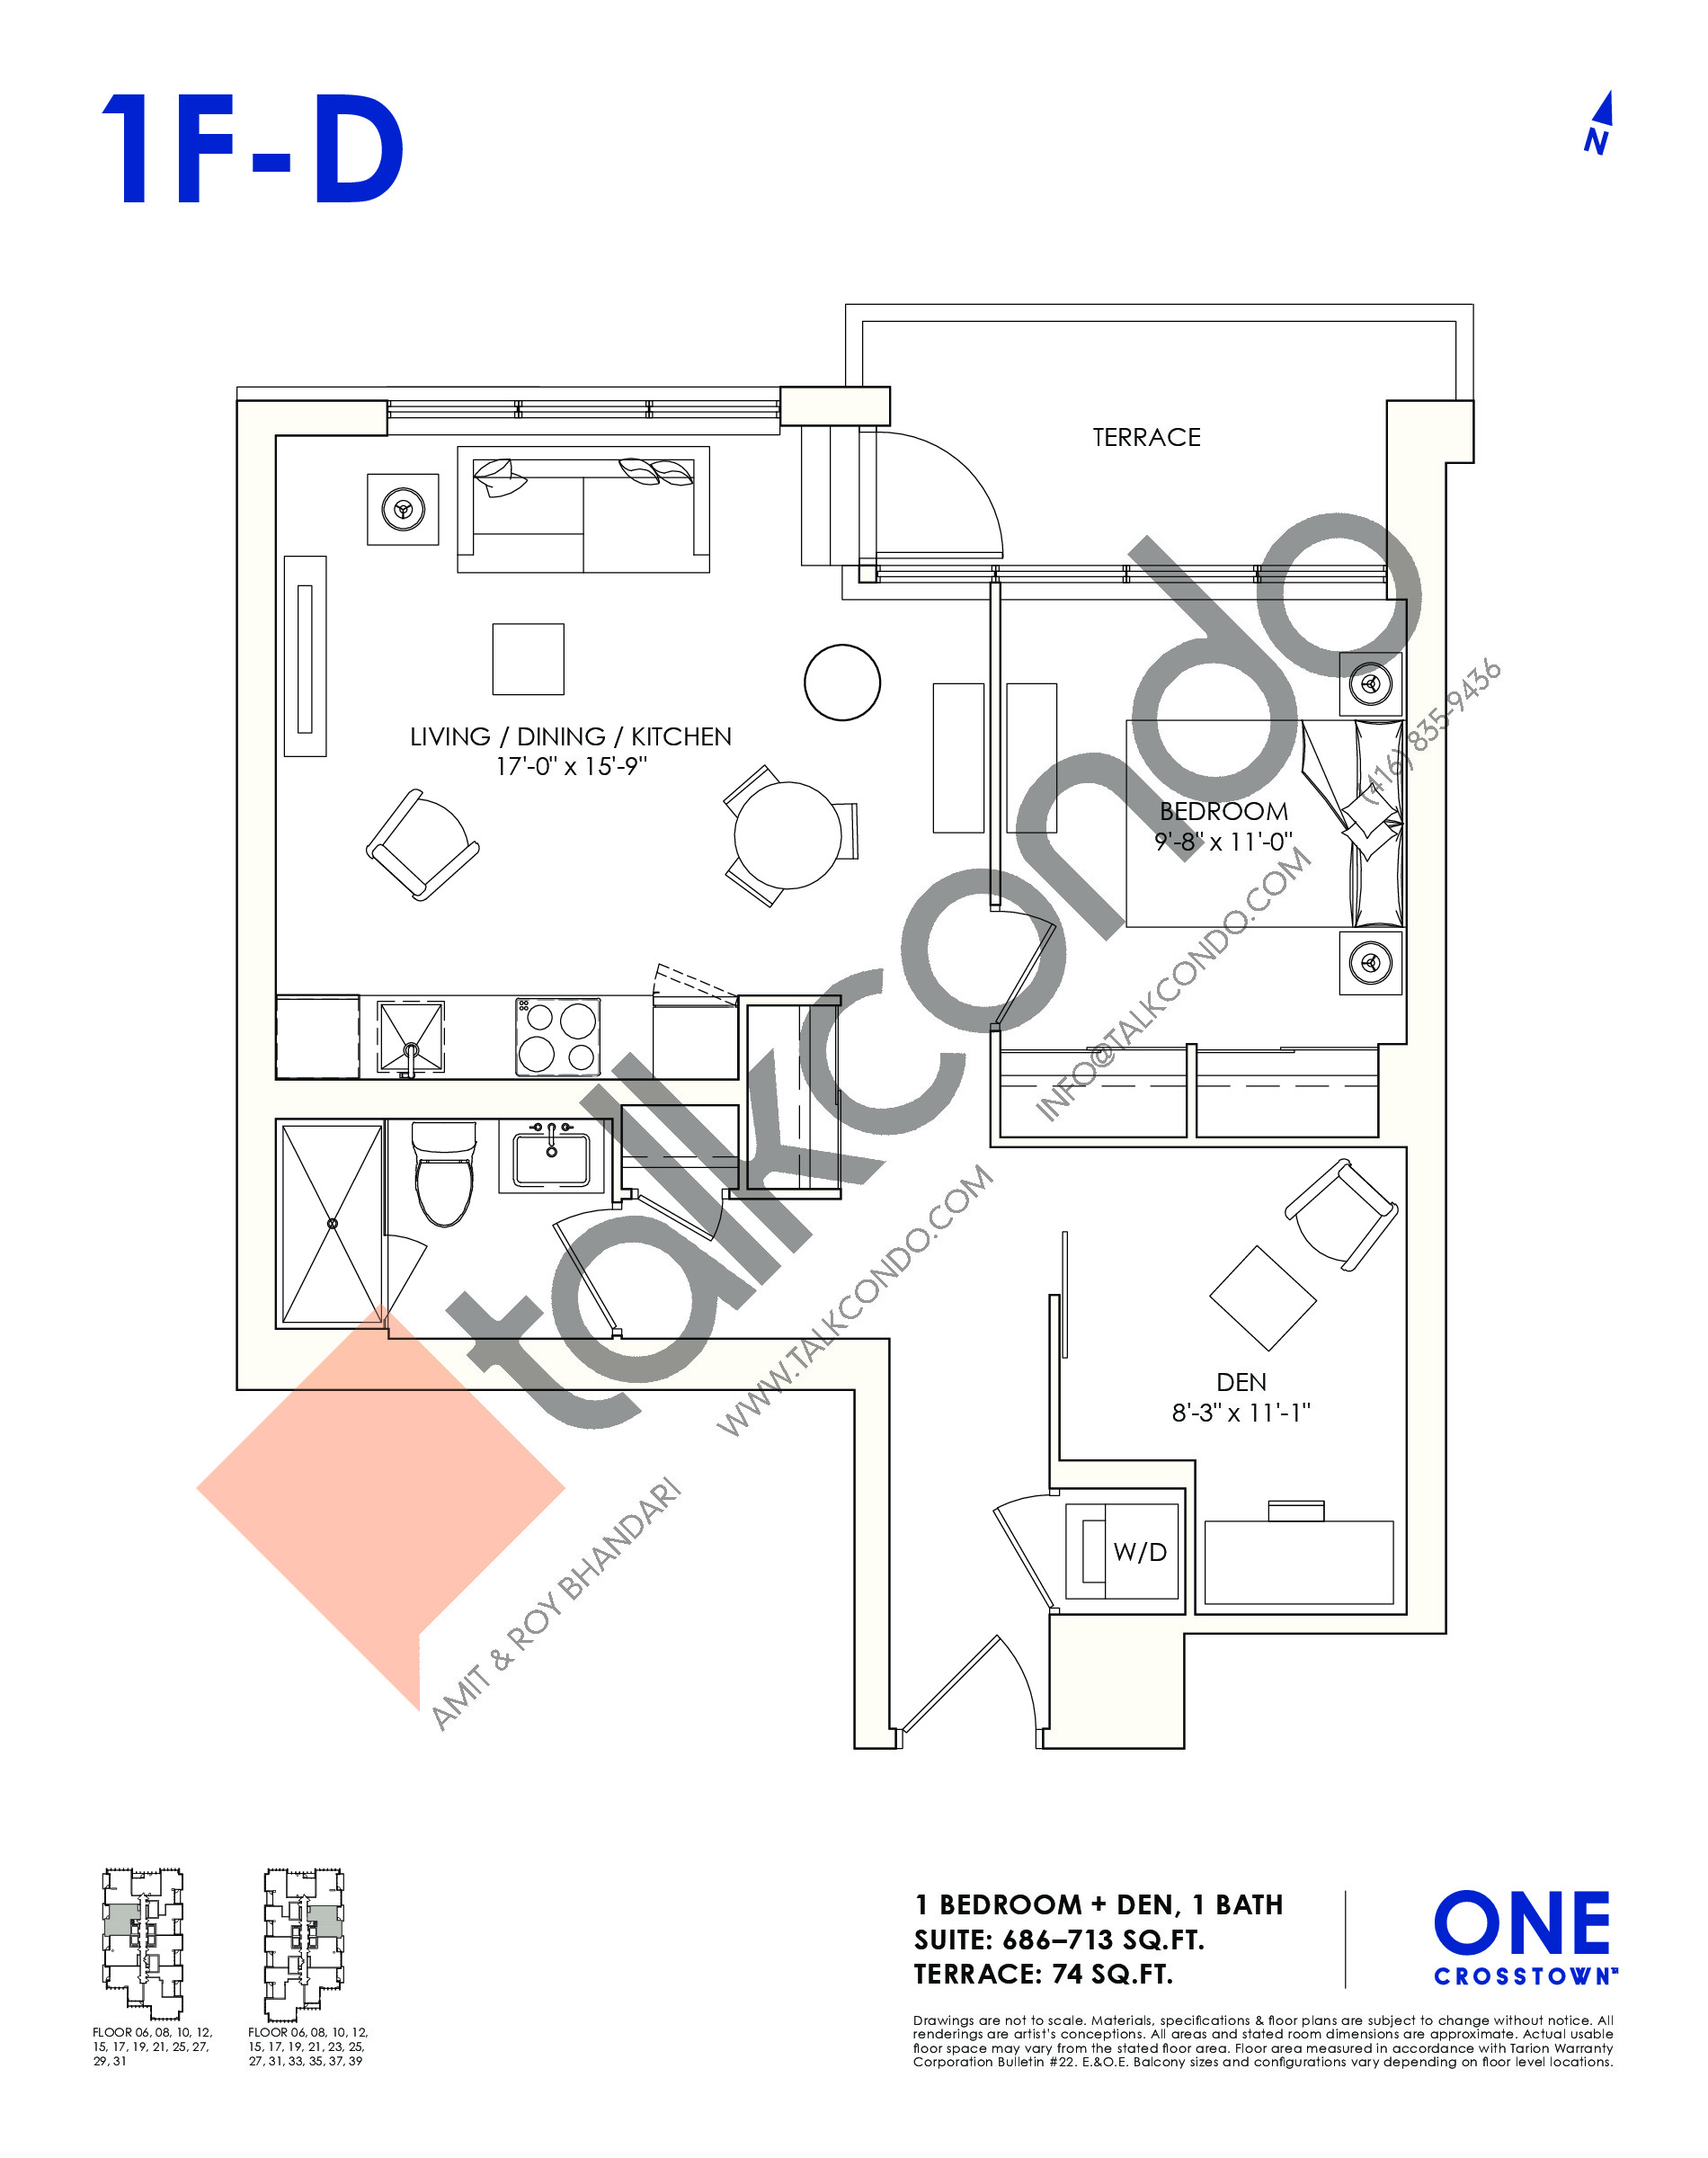 1F-D Floor Plan at One Crosstown Condos - 713 sq.ft